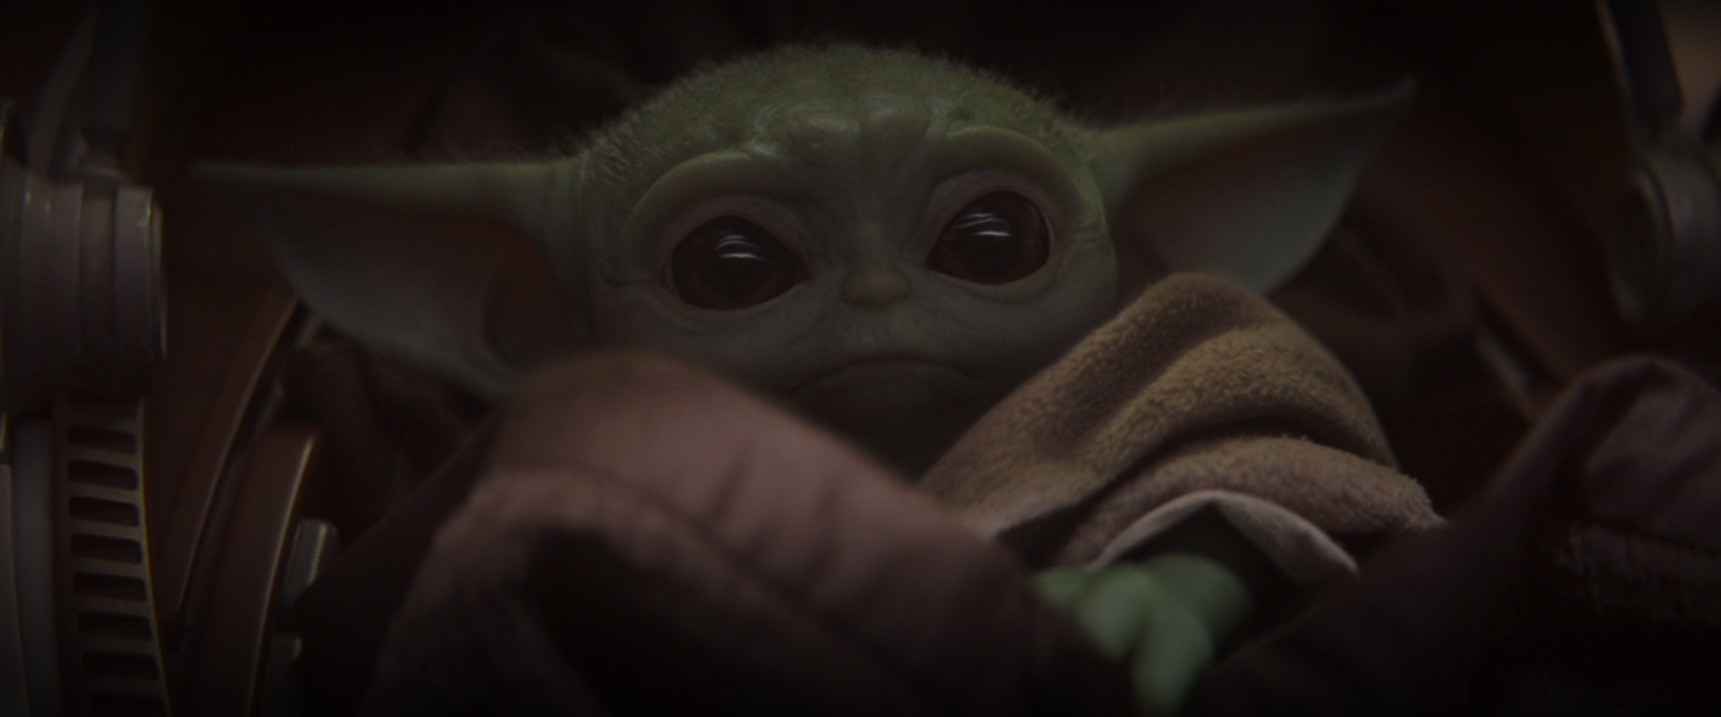 When The Mandalorian takes place, and what it means for Baby Yoda